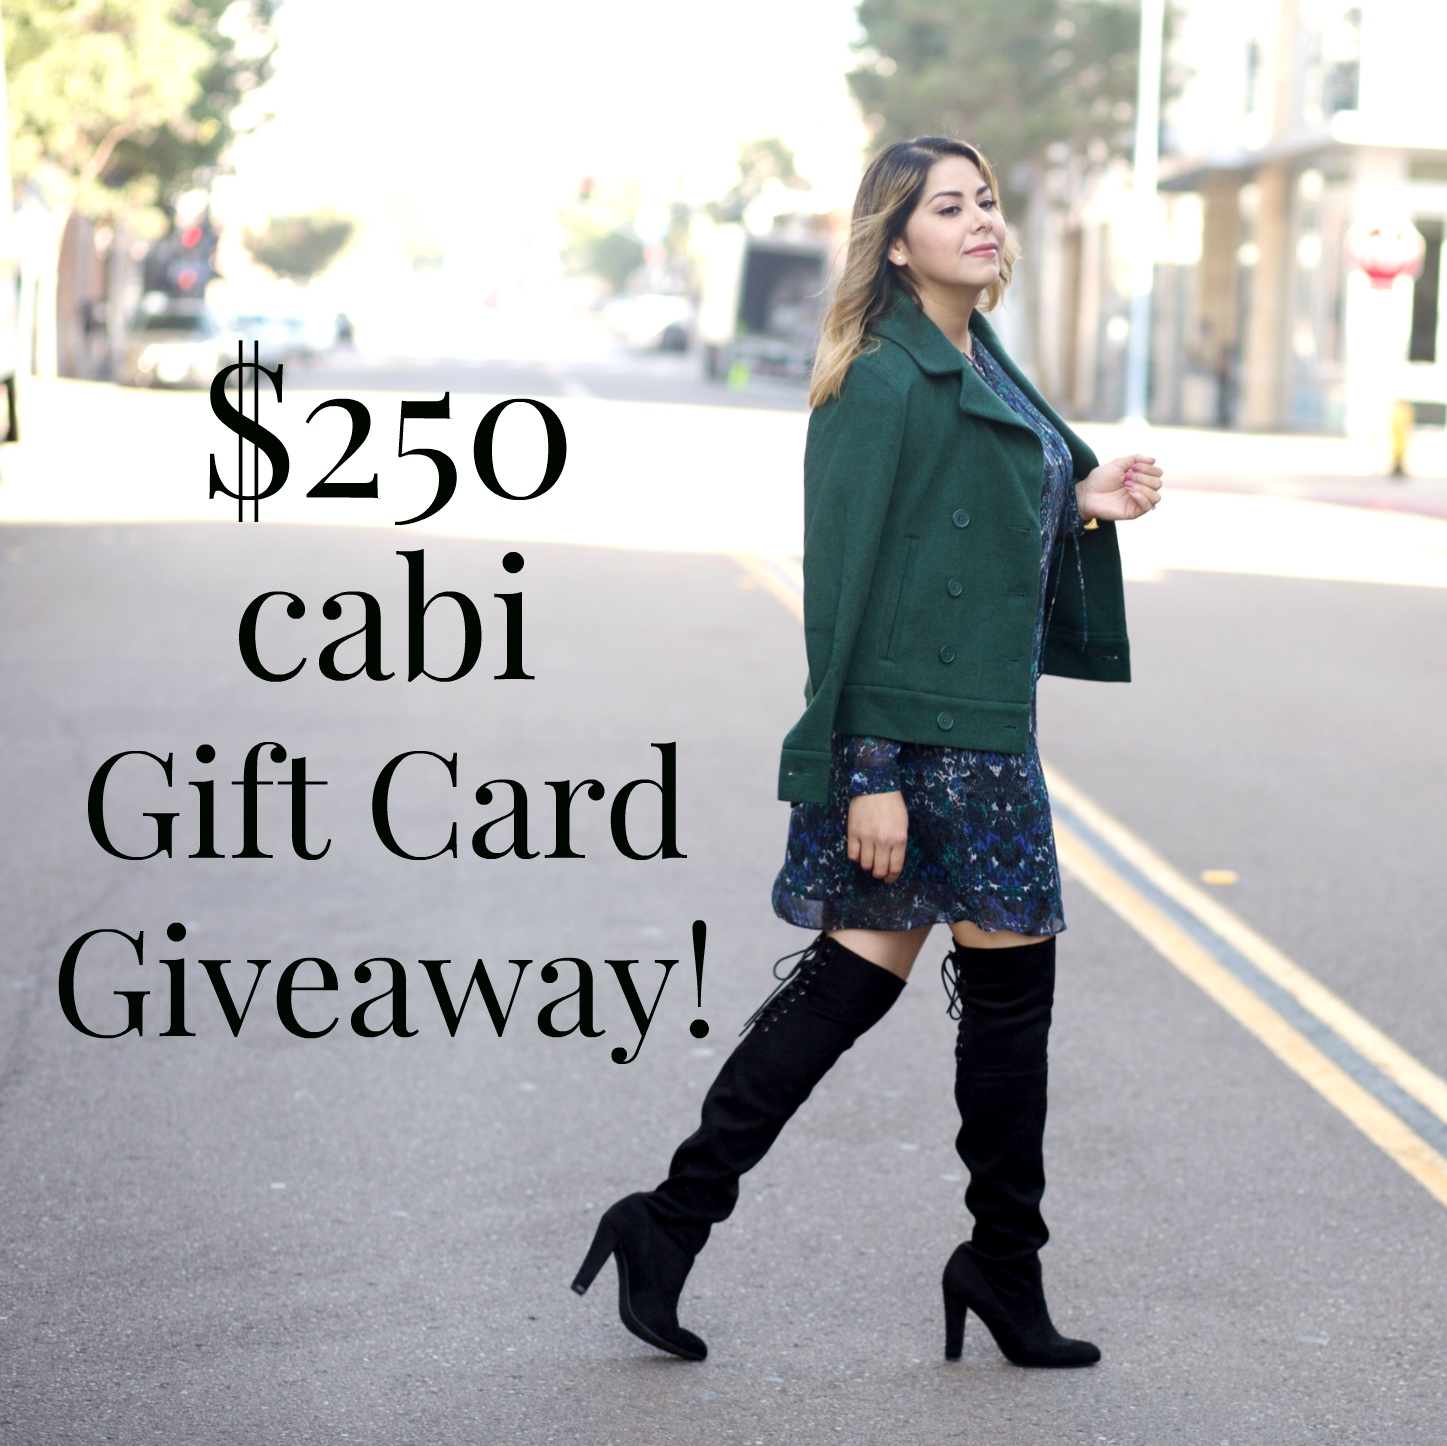 $250 cabi gift card giveaway, cabi giveaway, cabi clothing blogger